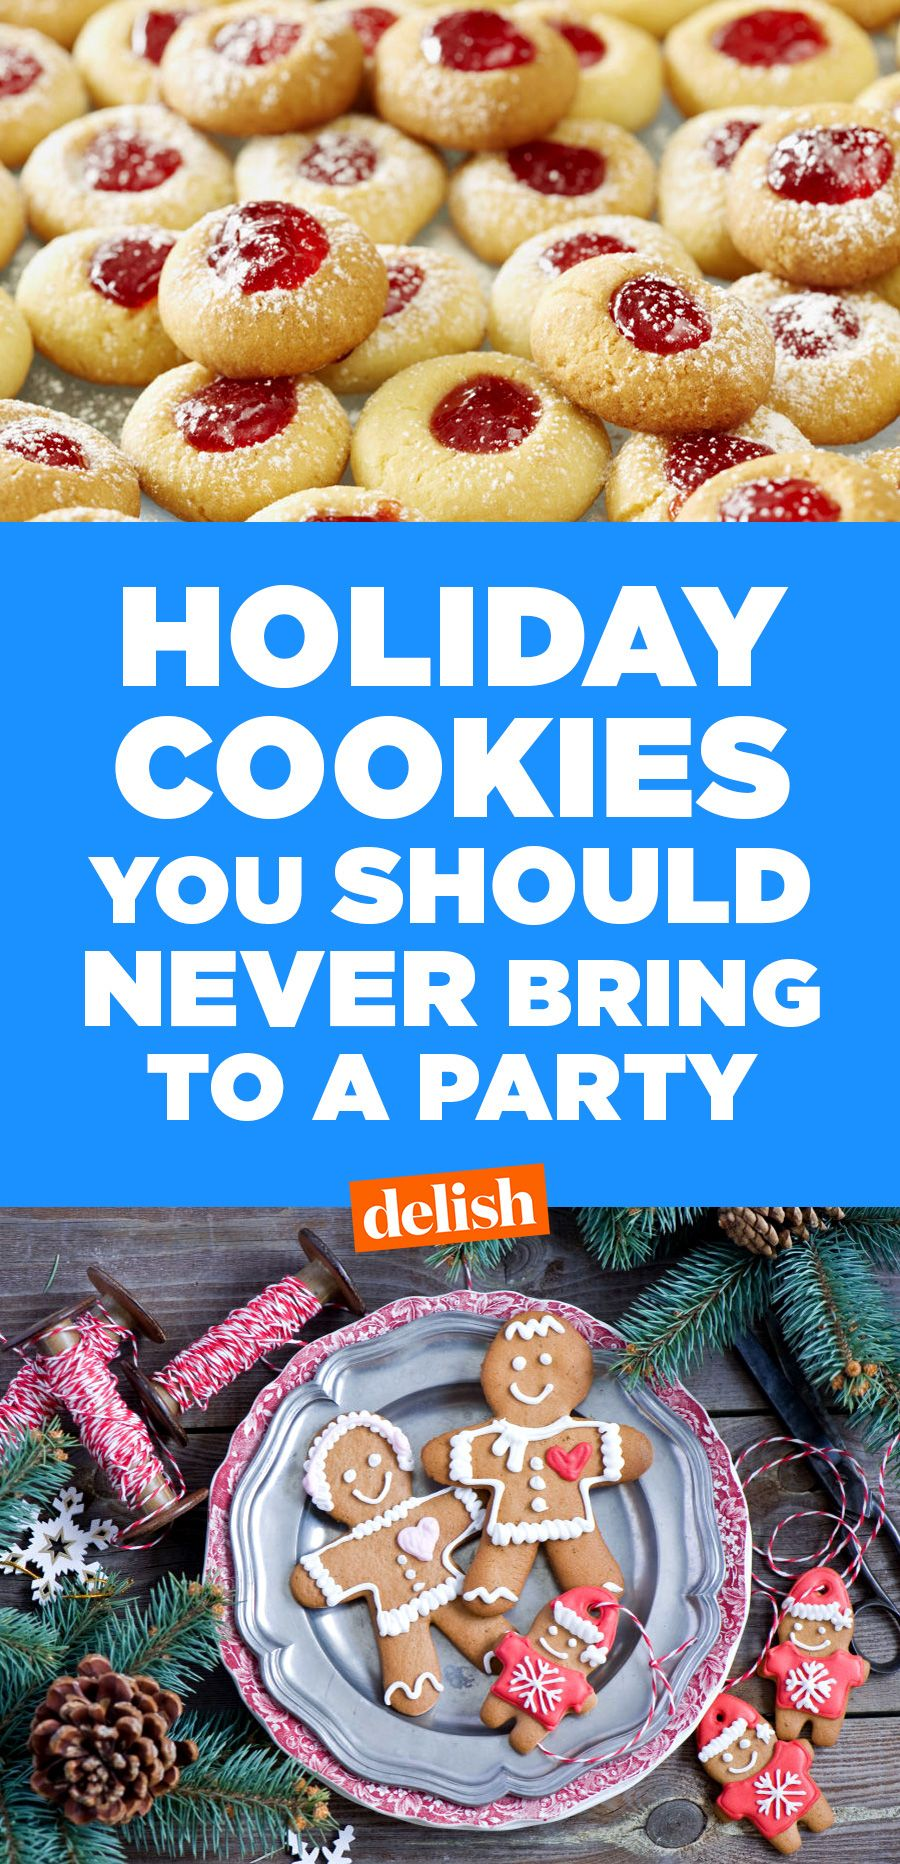 15+ Holiday Cookies Everyone Secretly Hates - The Worst Christmas ...